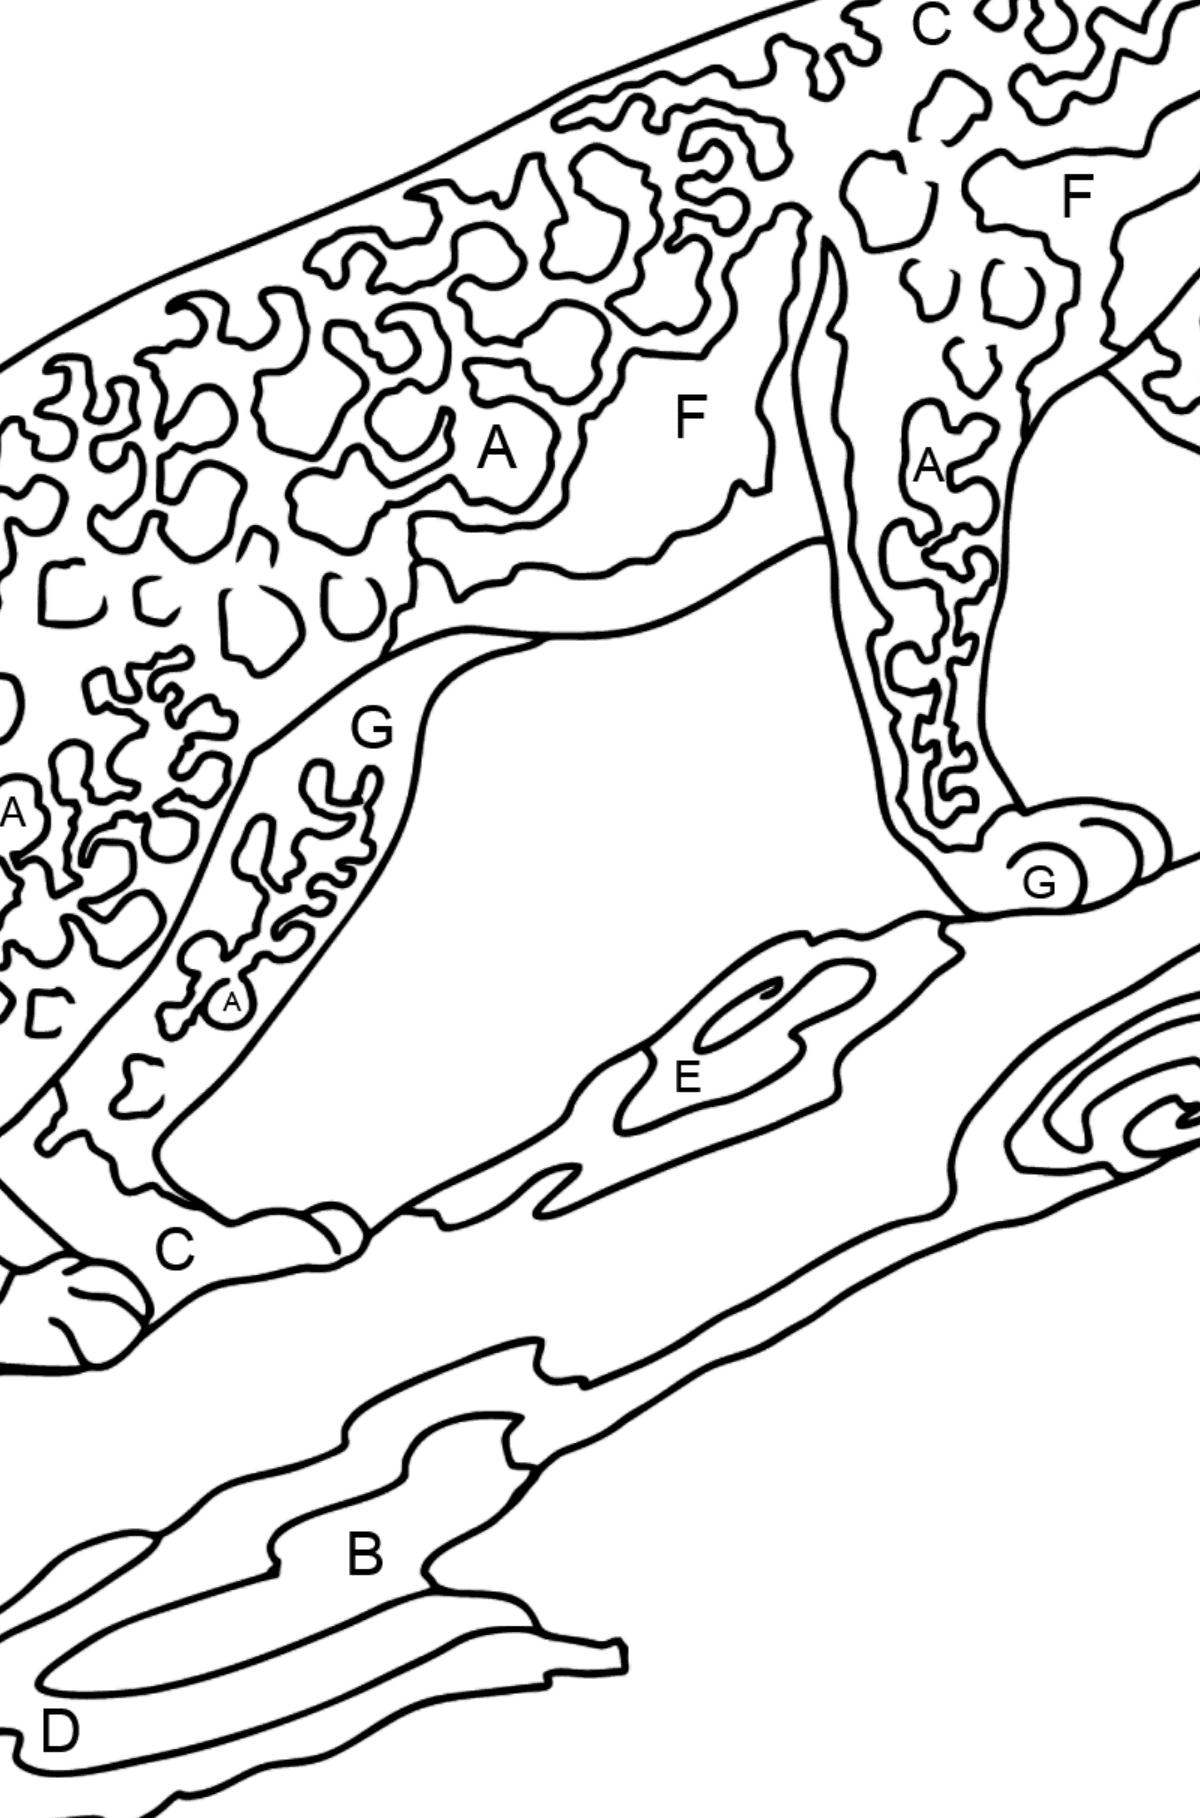 Coloring Page - A Leopard on a Branch - Coloring by Letters for Kids